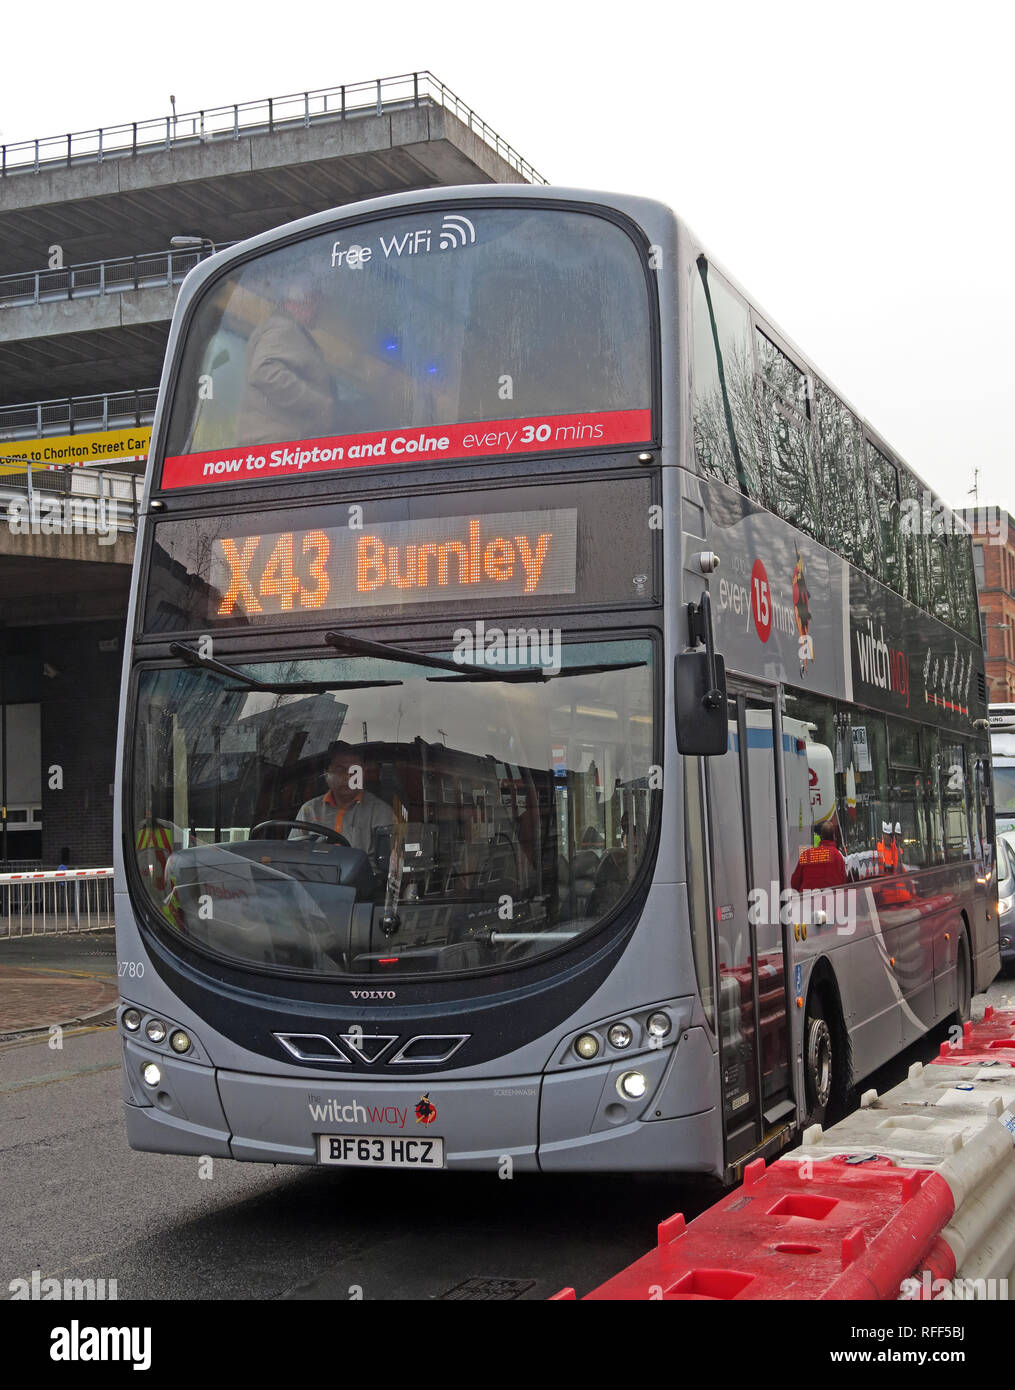 The Witchway X43 bus, Manchester to Burnley express, TransDev Lancashire Bus, Chorlton Street, Manchester, England, UK, M1 3JF Stock Photo